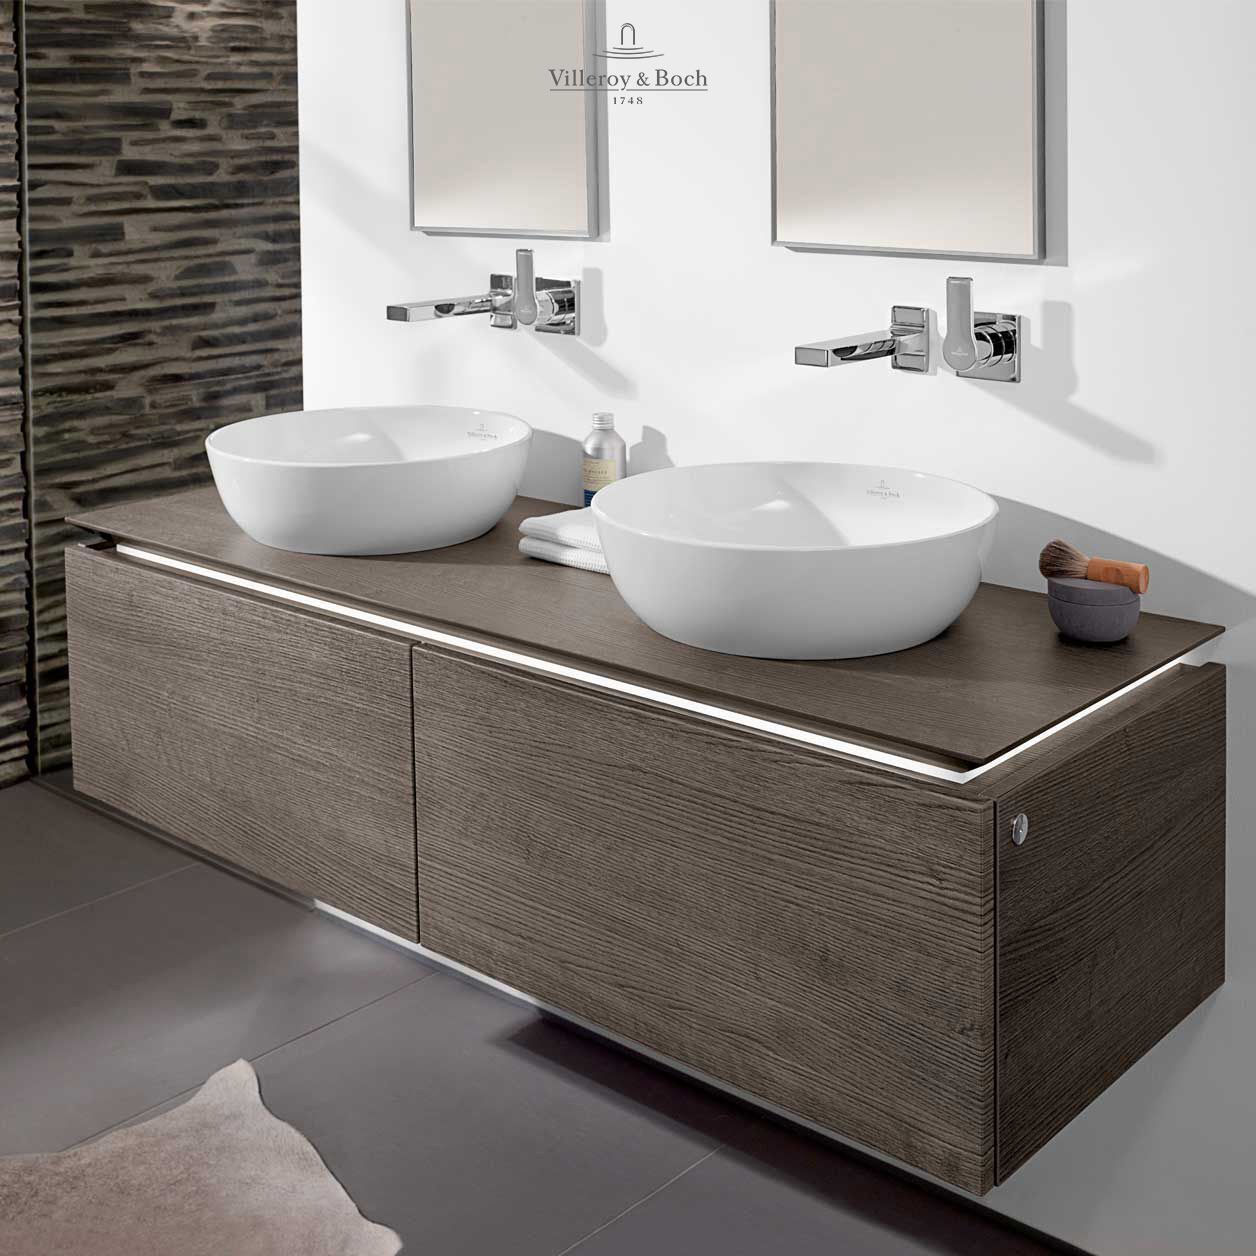 oak graphite villeroy boch Amazing bathrooms, Bathroom